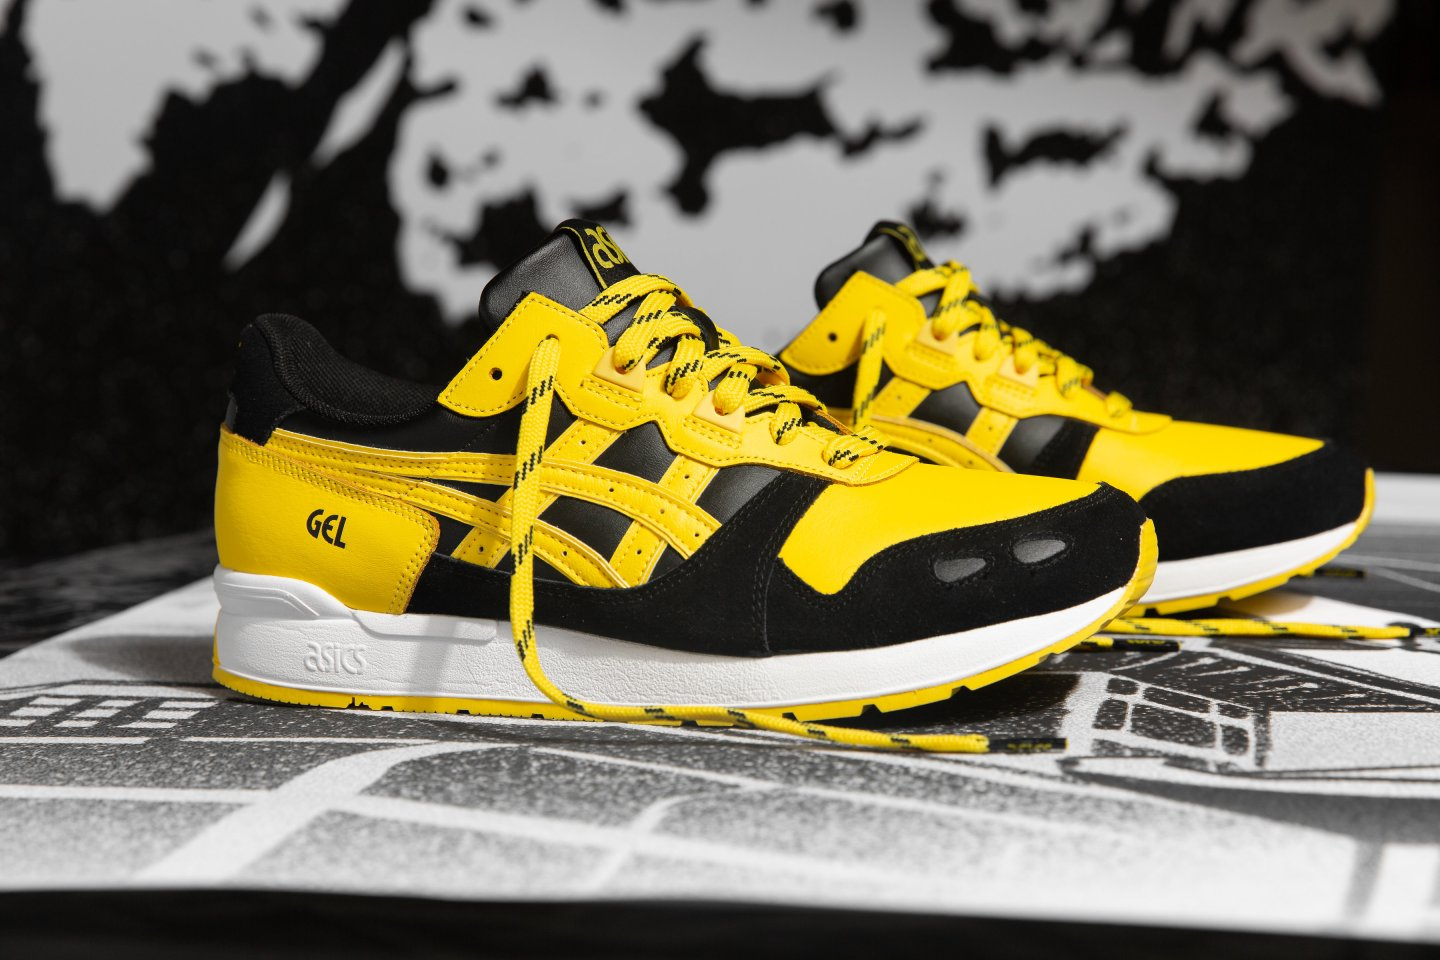 asics-tiger-welcome-to-the-dojo-collection-22.jpg